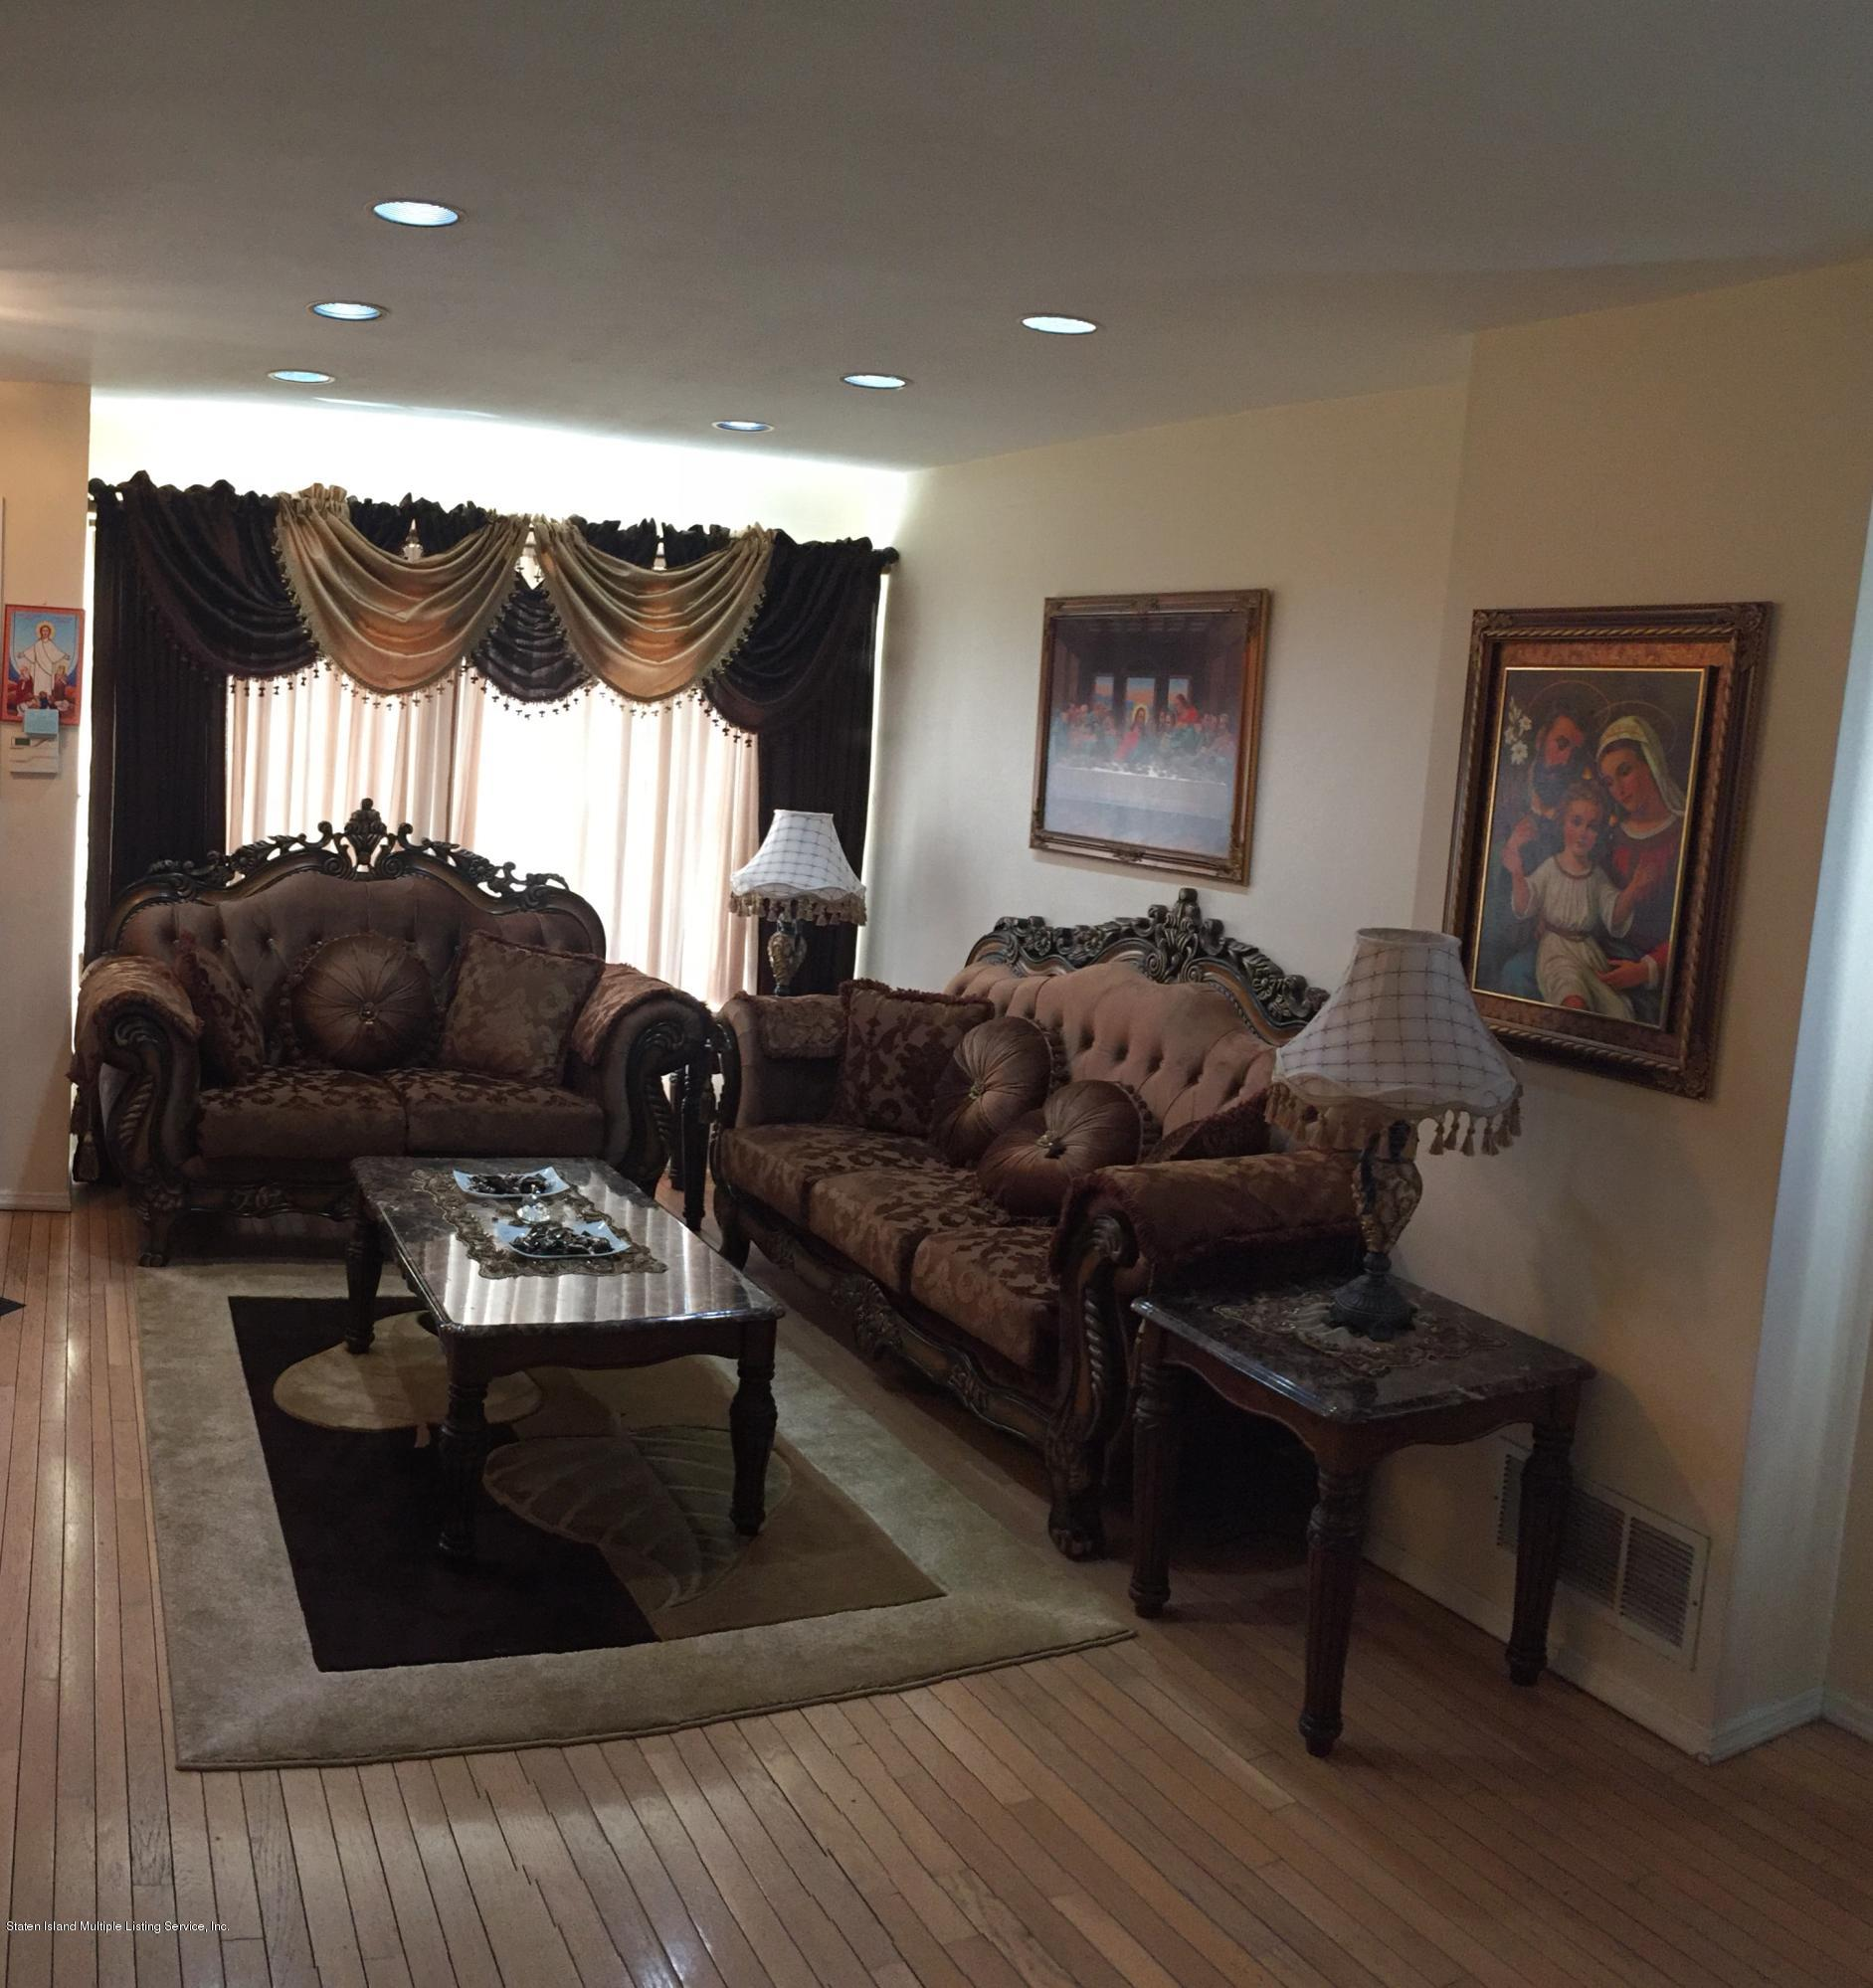 Single Family - Semi-Attached 14 Latourette Lane  Staten Island, NY 10314, MLS-1124936-4